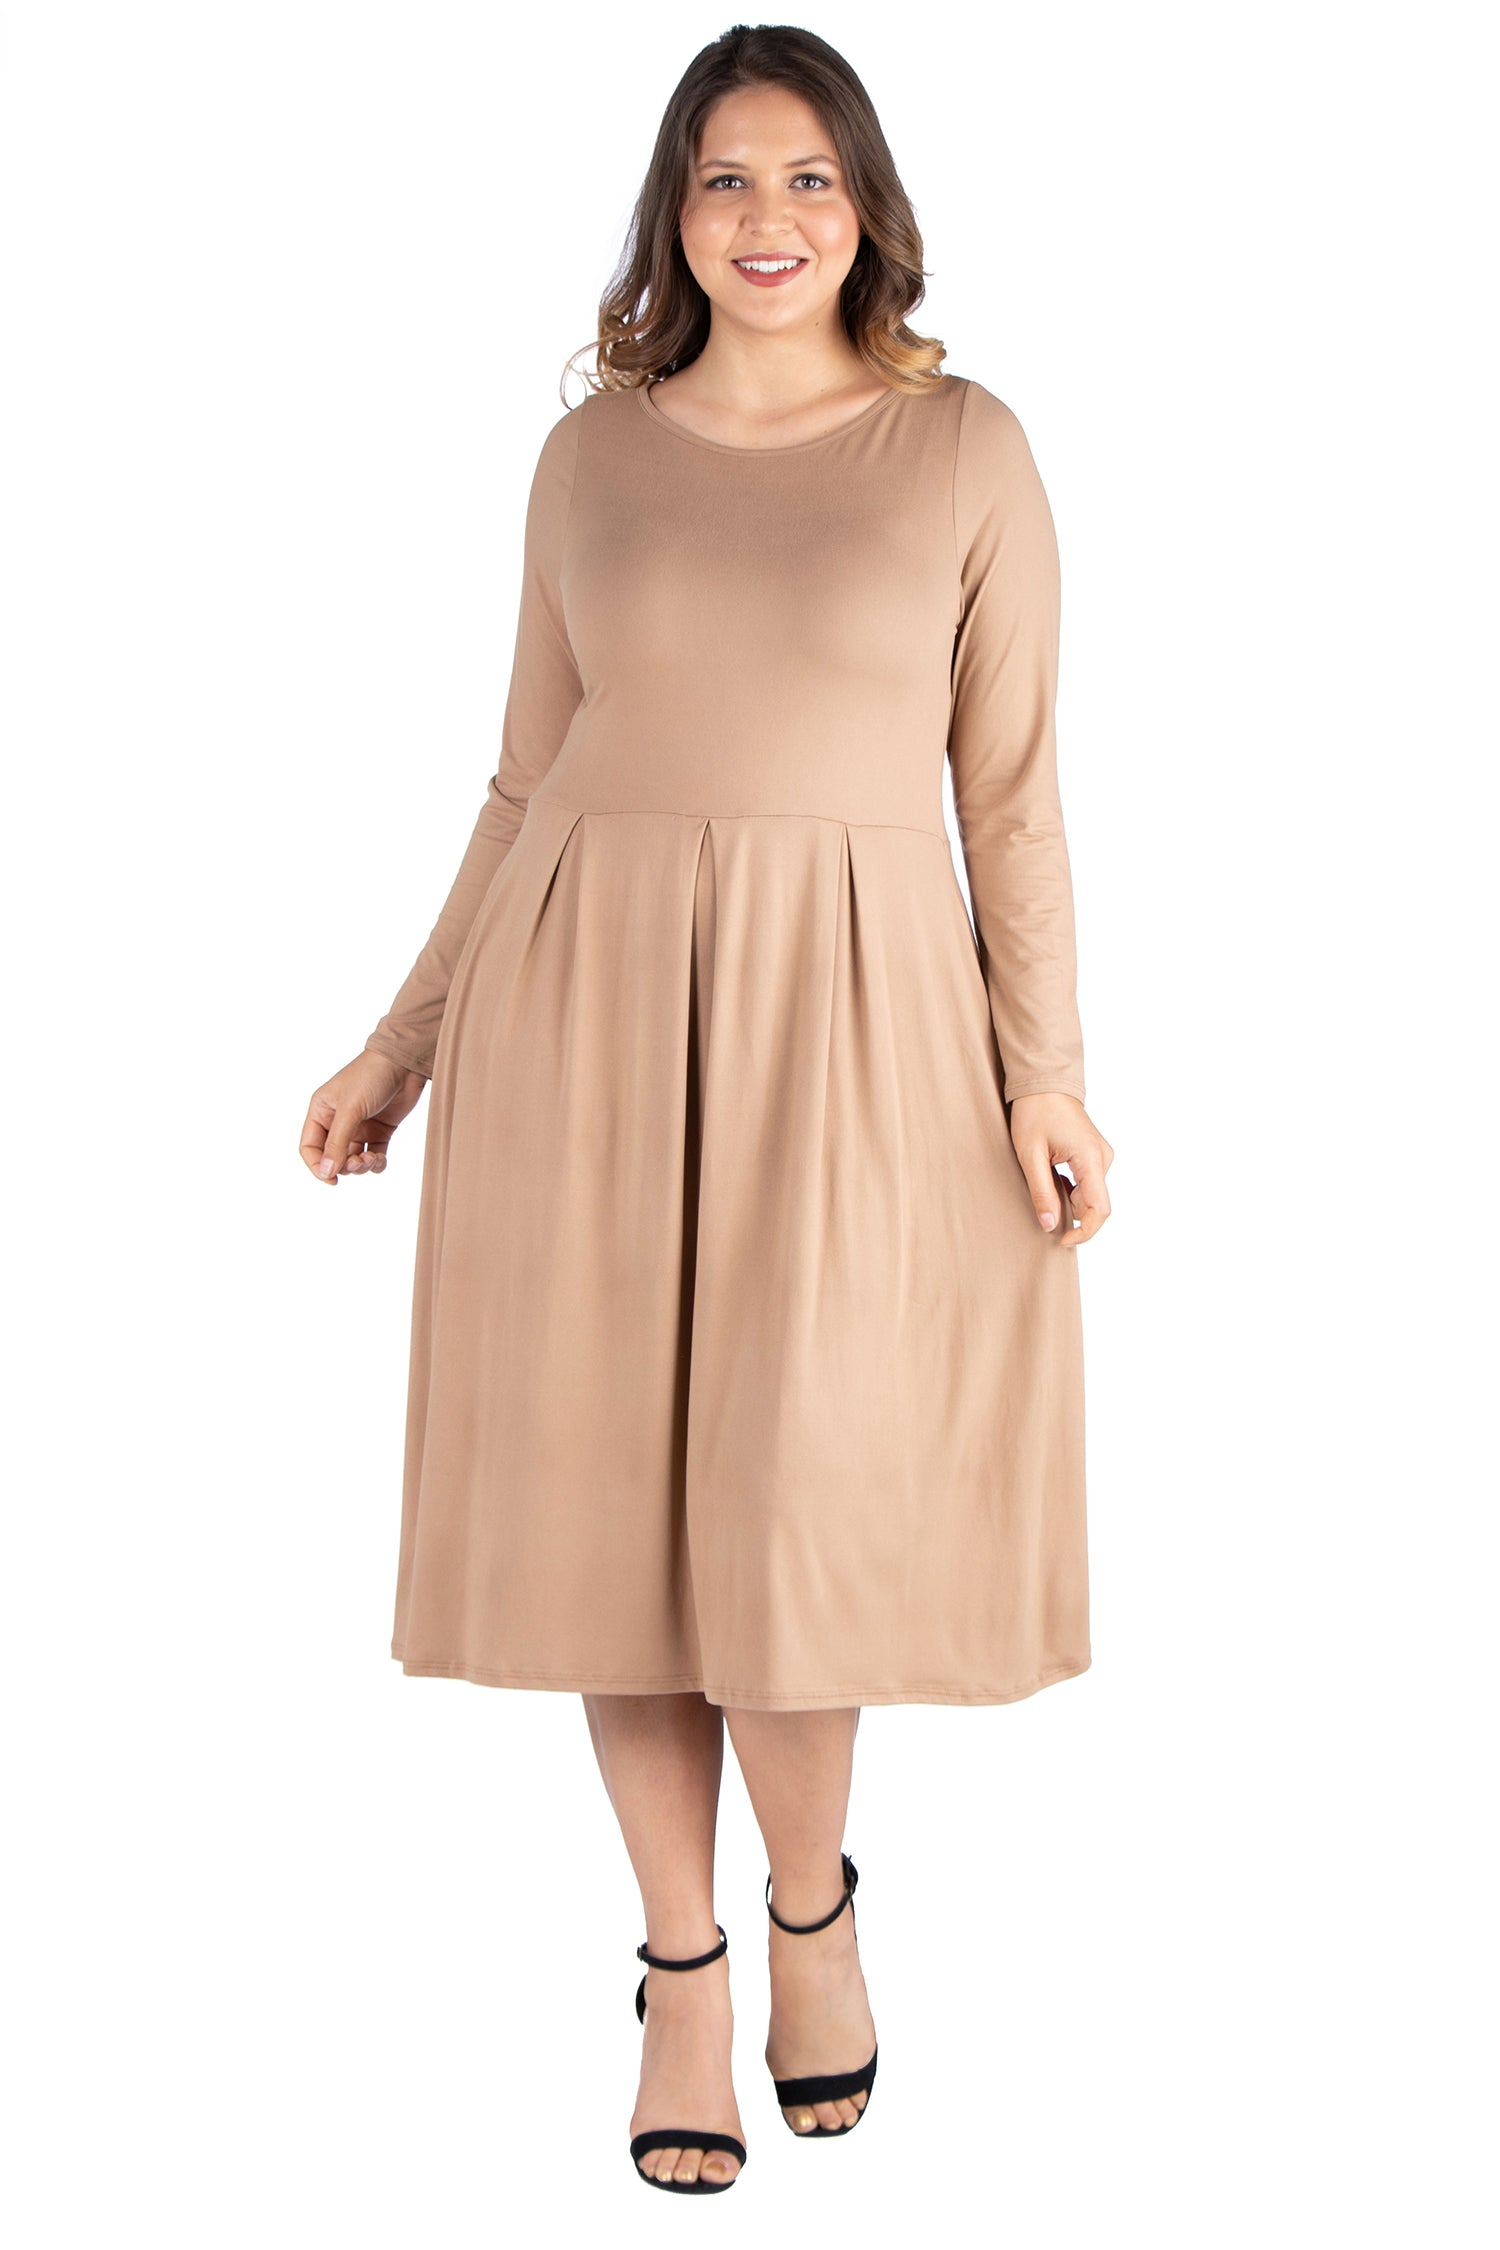 24seven Comfort Apparel Long Sleeve Fit and Flare Plus Size Midi Dress